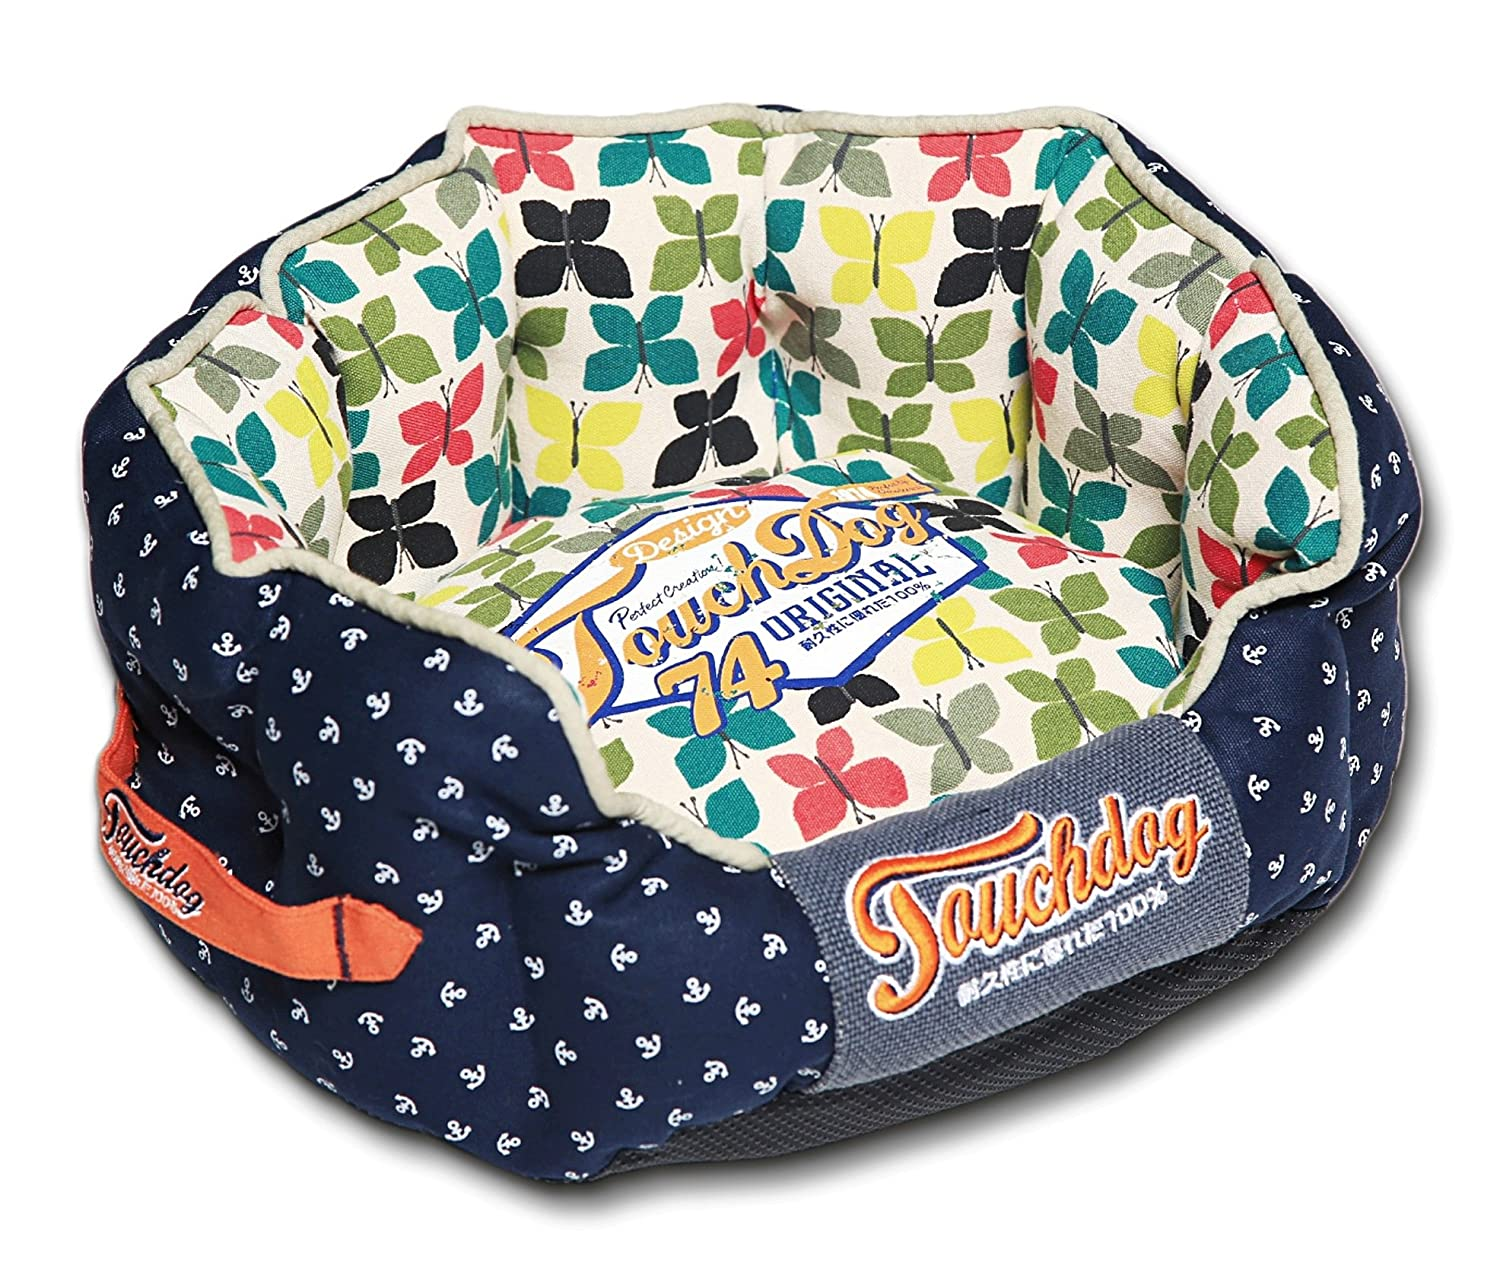 TOUCHDOG 'Butterfly' Rounded Premium Fashion Designer Pet Dog Bed Lounge, Medium, Navy bluee, Butterfly Pattern